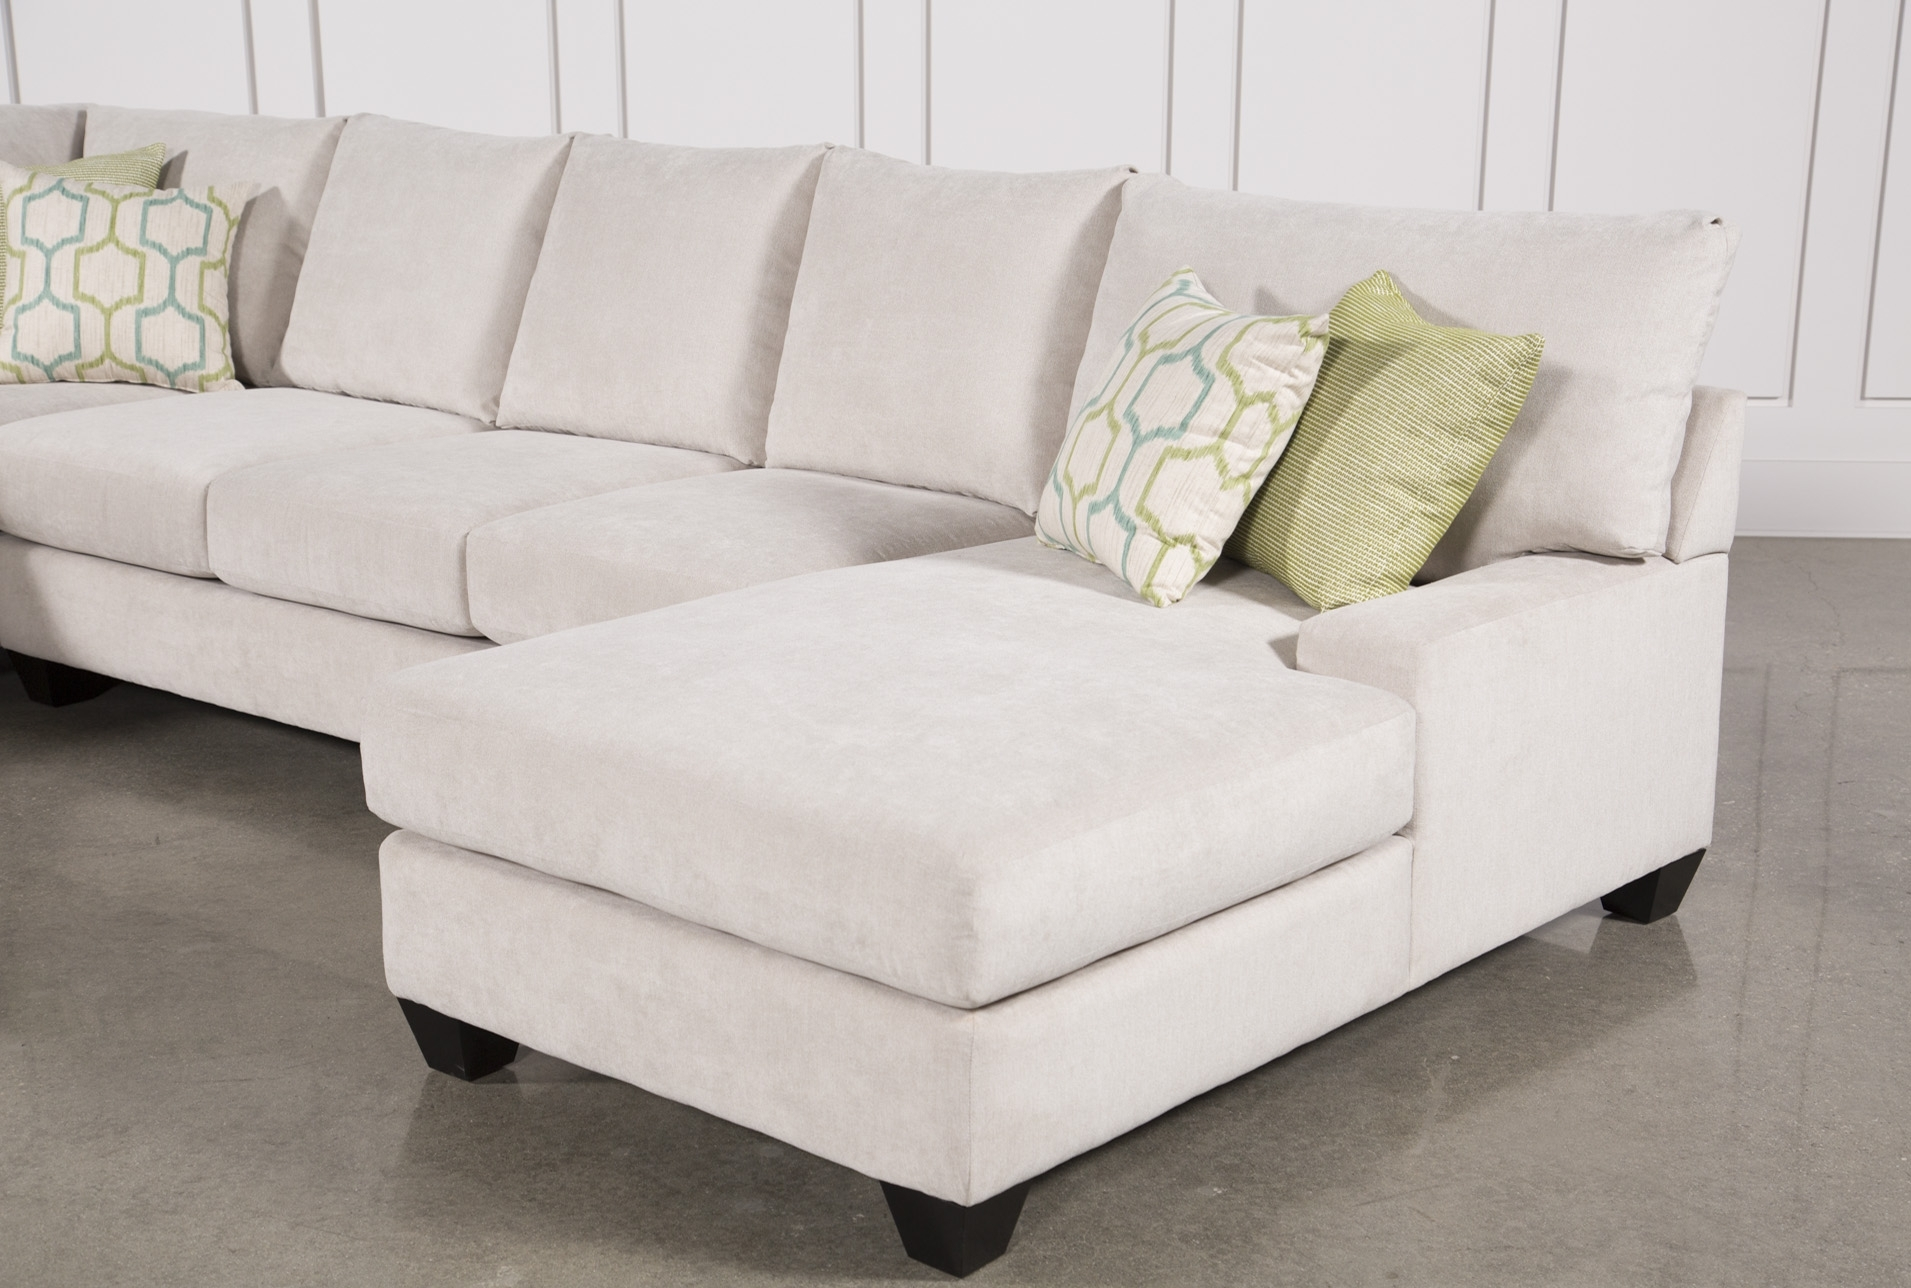 Harper Foam 3 Piece Sectional W/raf Chaise | Products | Pinterest inside Harper Down 3 Piece Sectionals (Image 12 of 30)